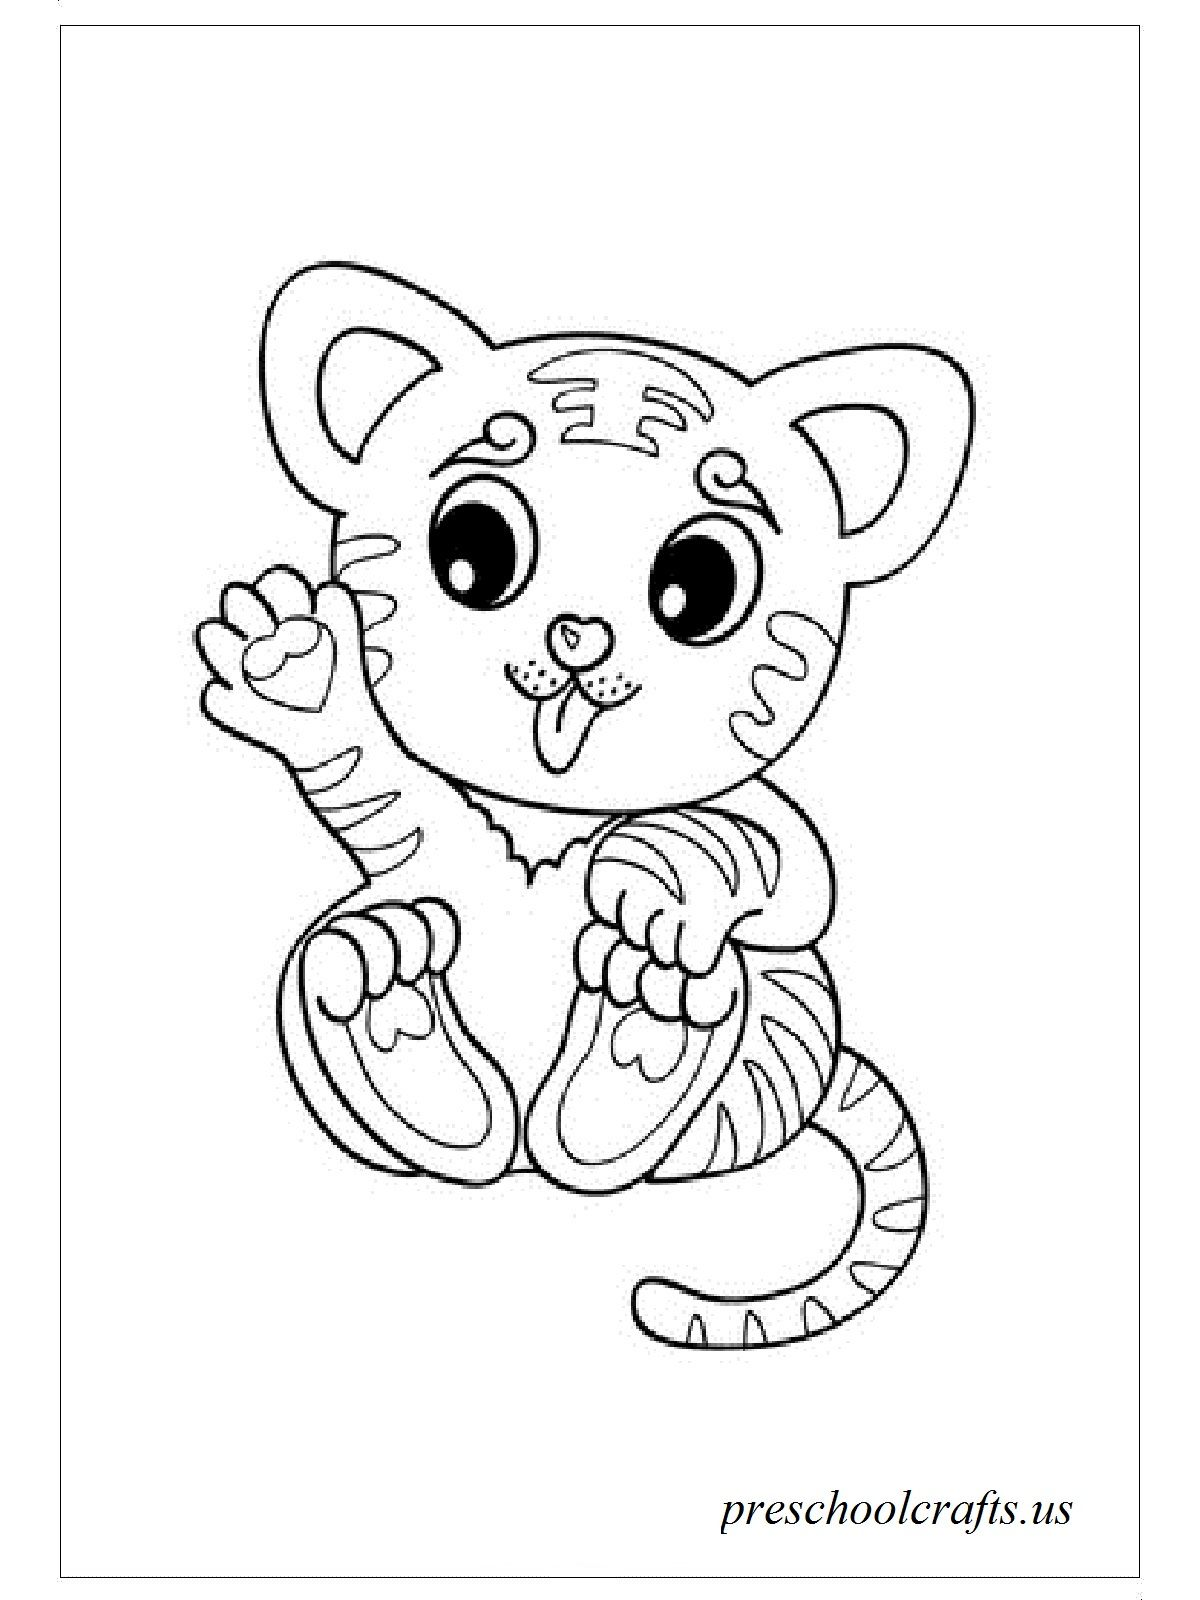 Baby Tiger Coloring Pages Preschool Crafts Zoo Animal Coloring Pages Cute Coloring Pages Cool Coloring Pages